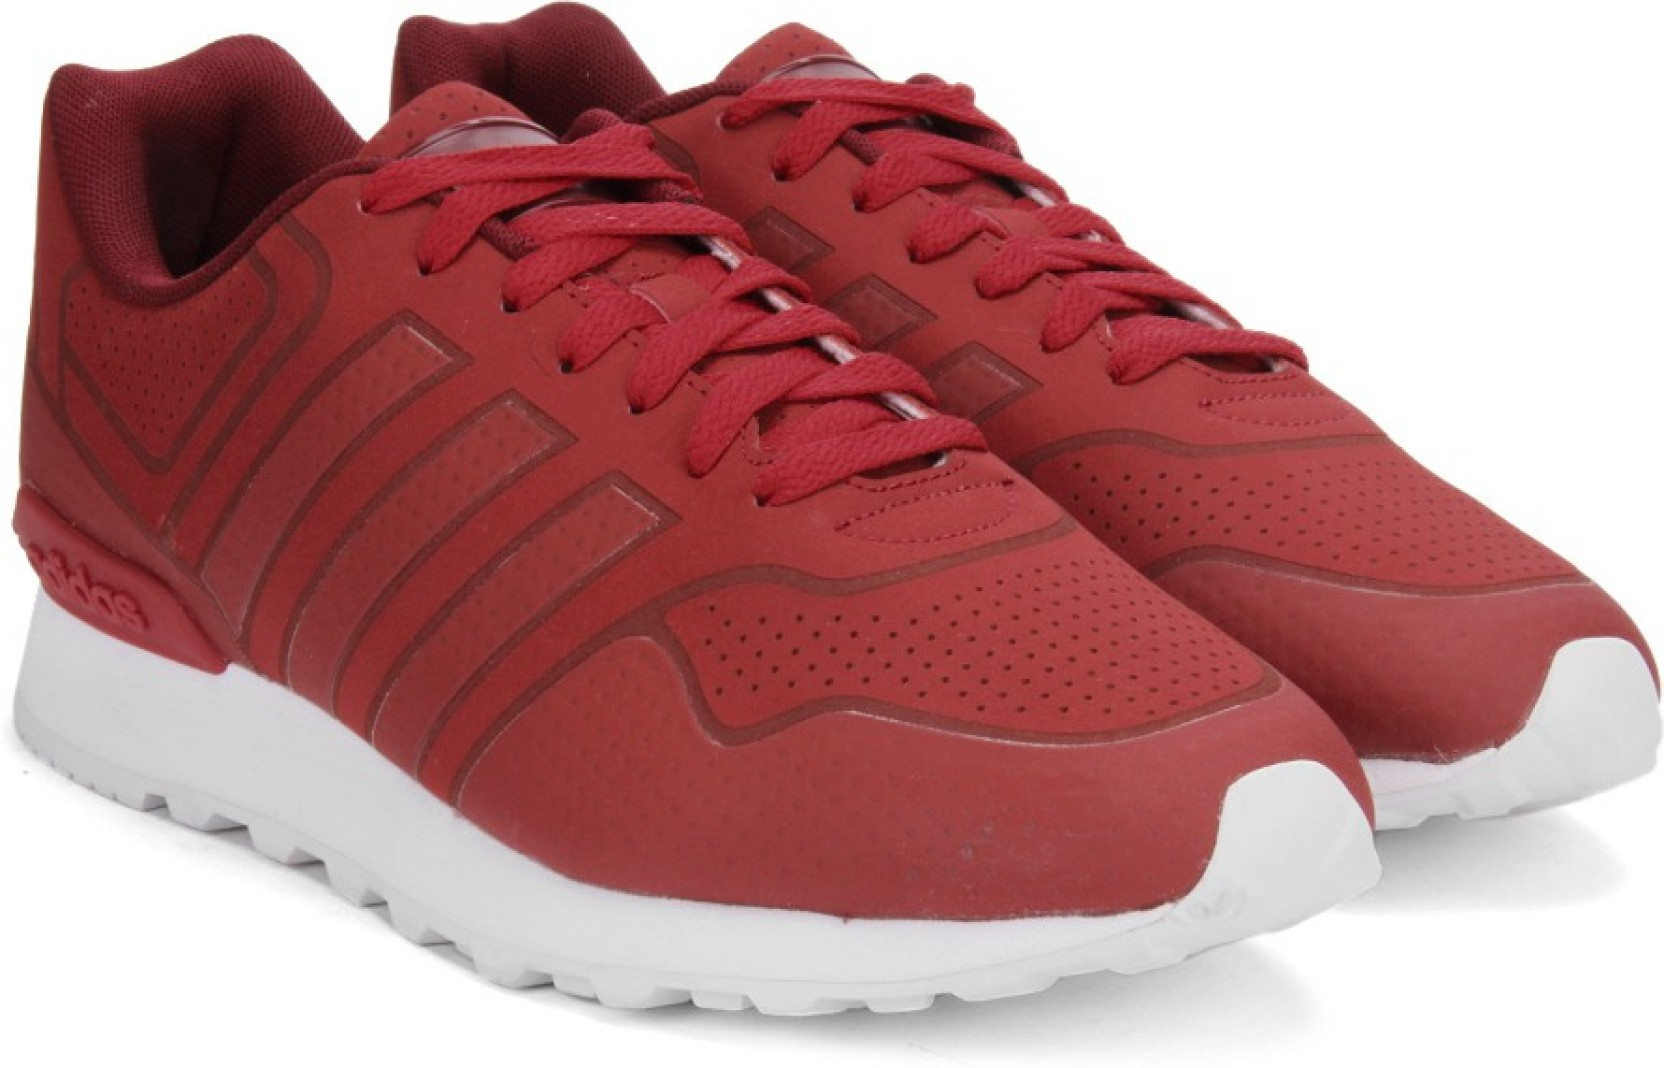 cheaper f4cf0 d8a96 ... spain adidas neo 10k casual sneakers for men. on offer d1ca2 104e2